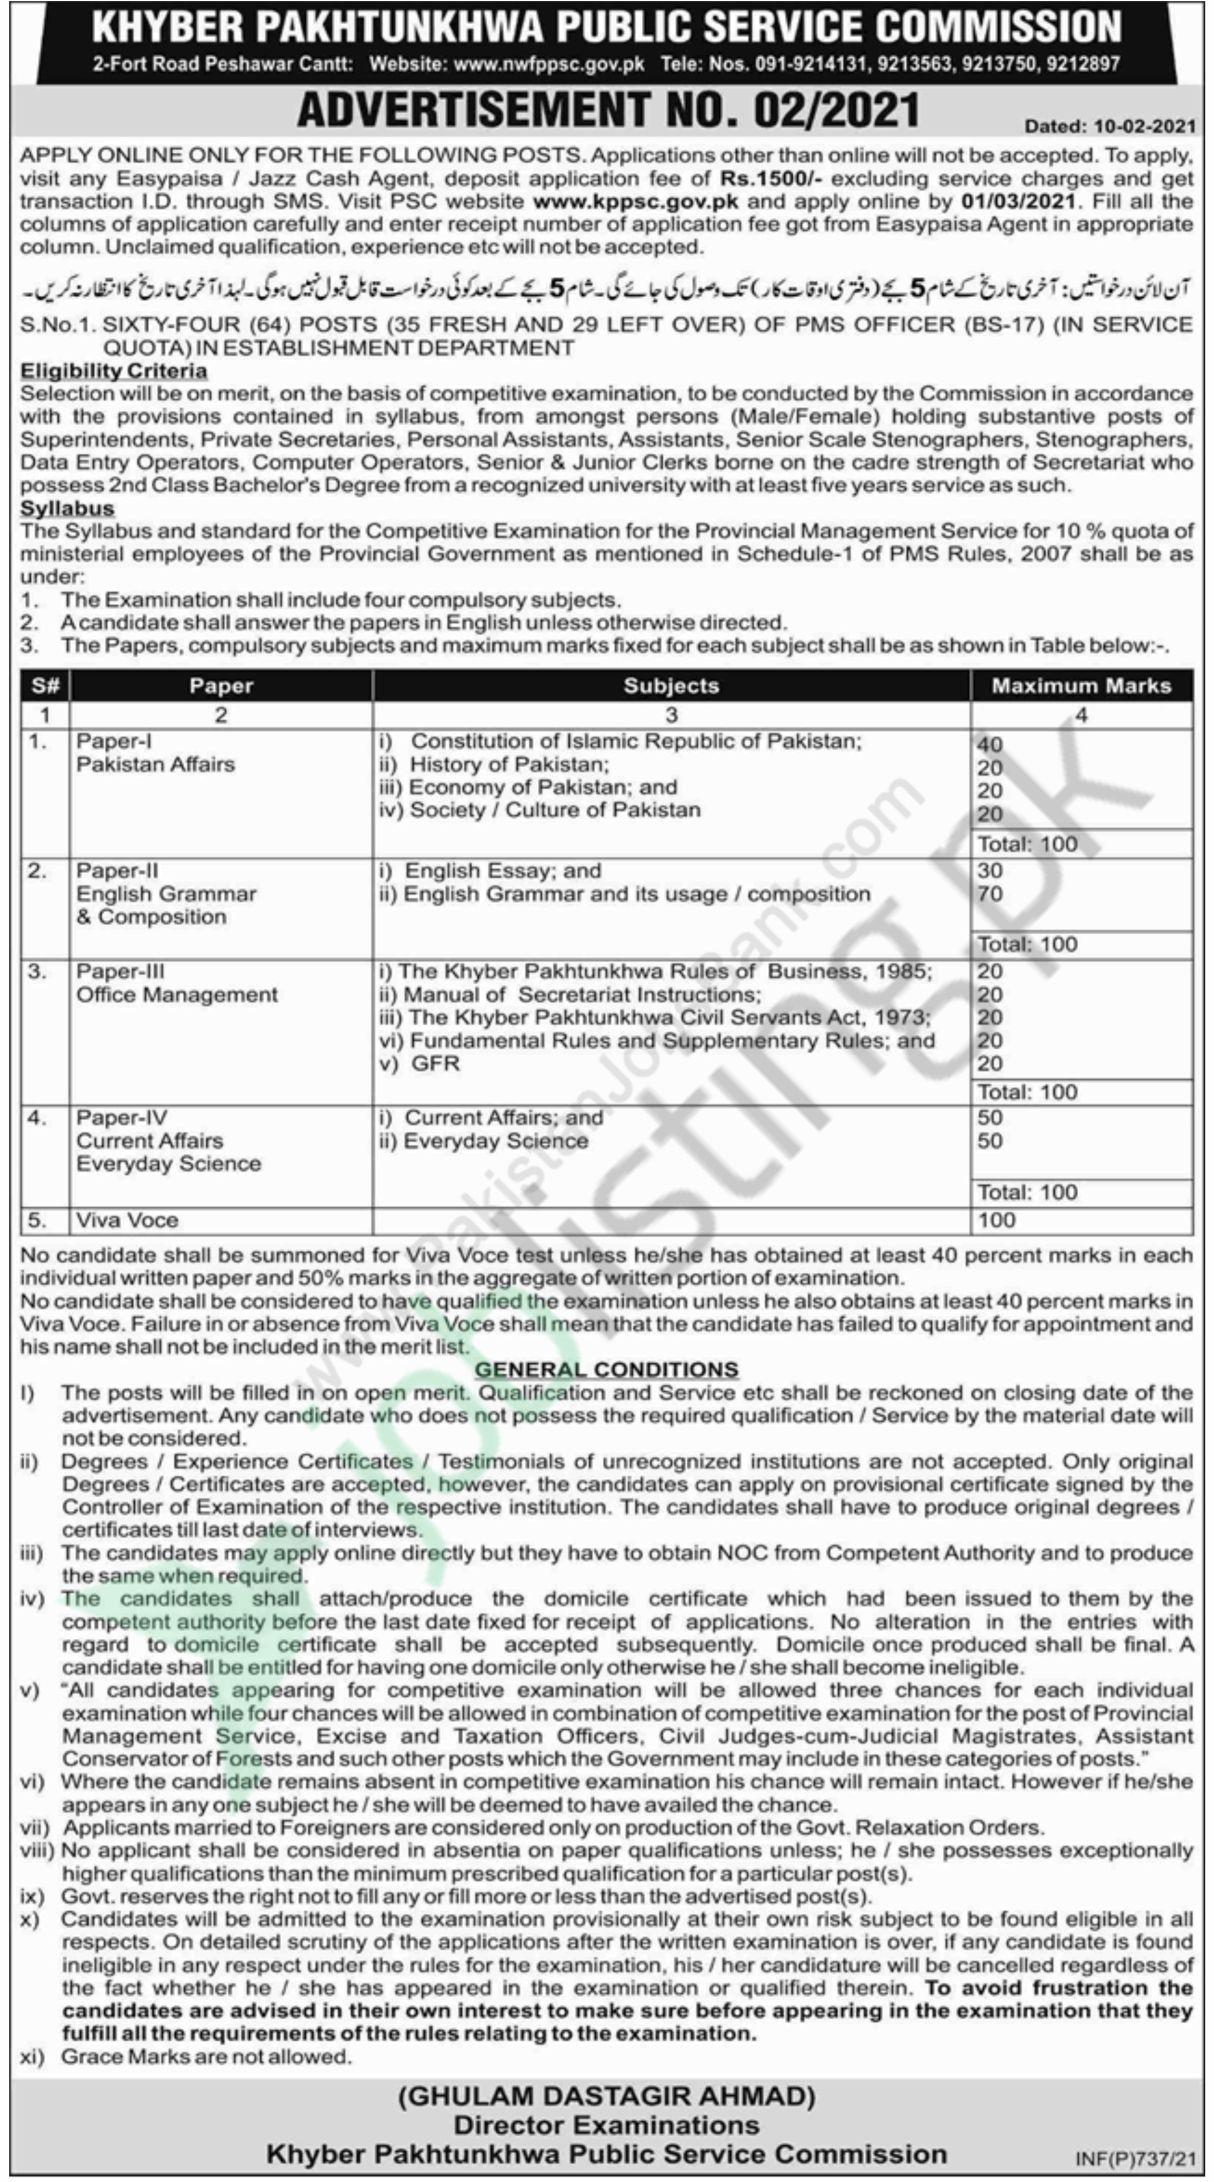 Provincial Management Service Officer in KP Public Service Commission